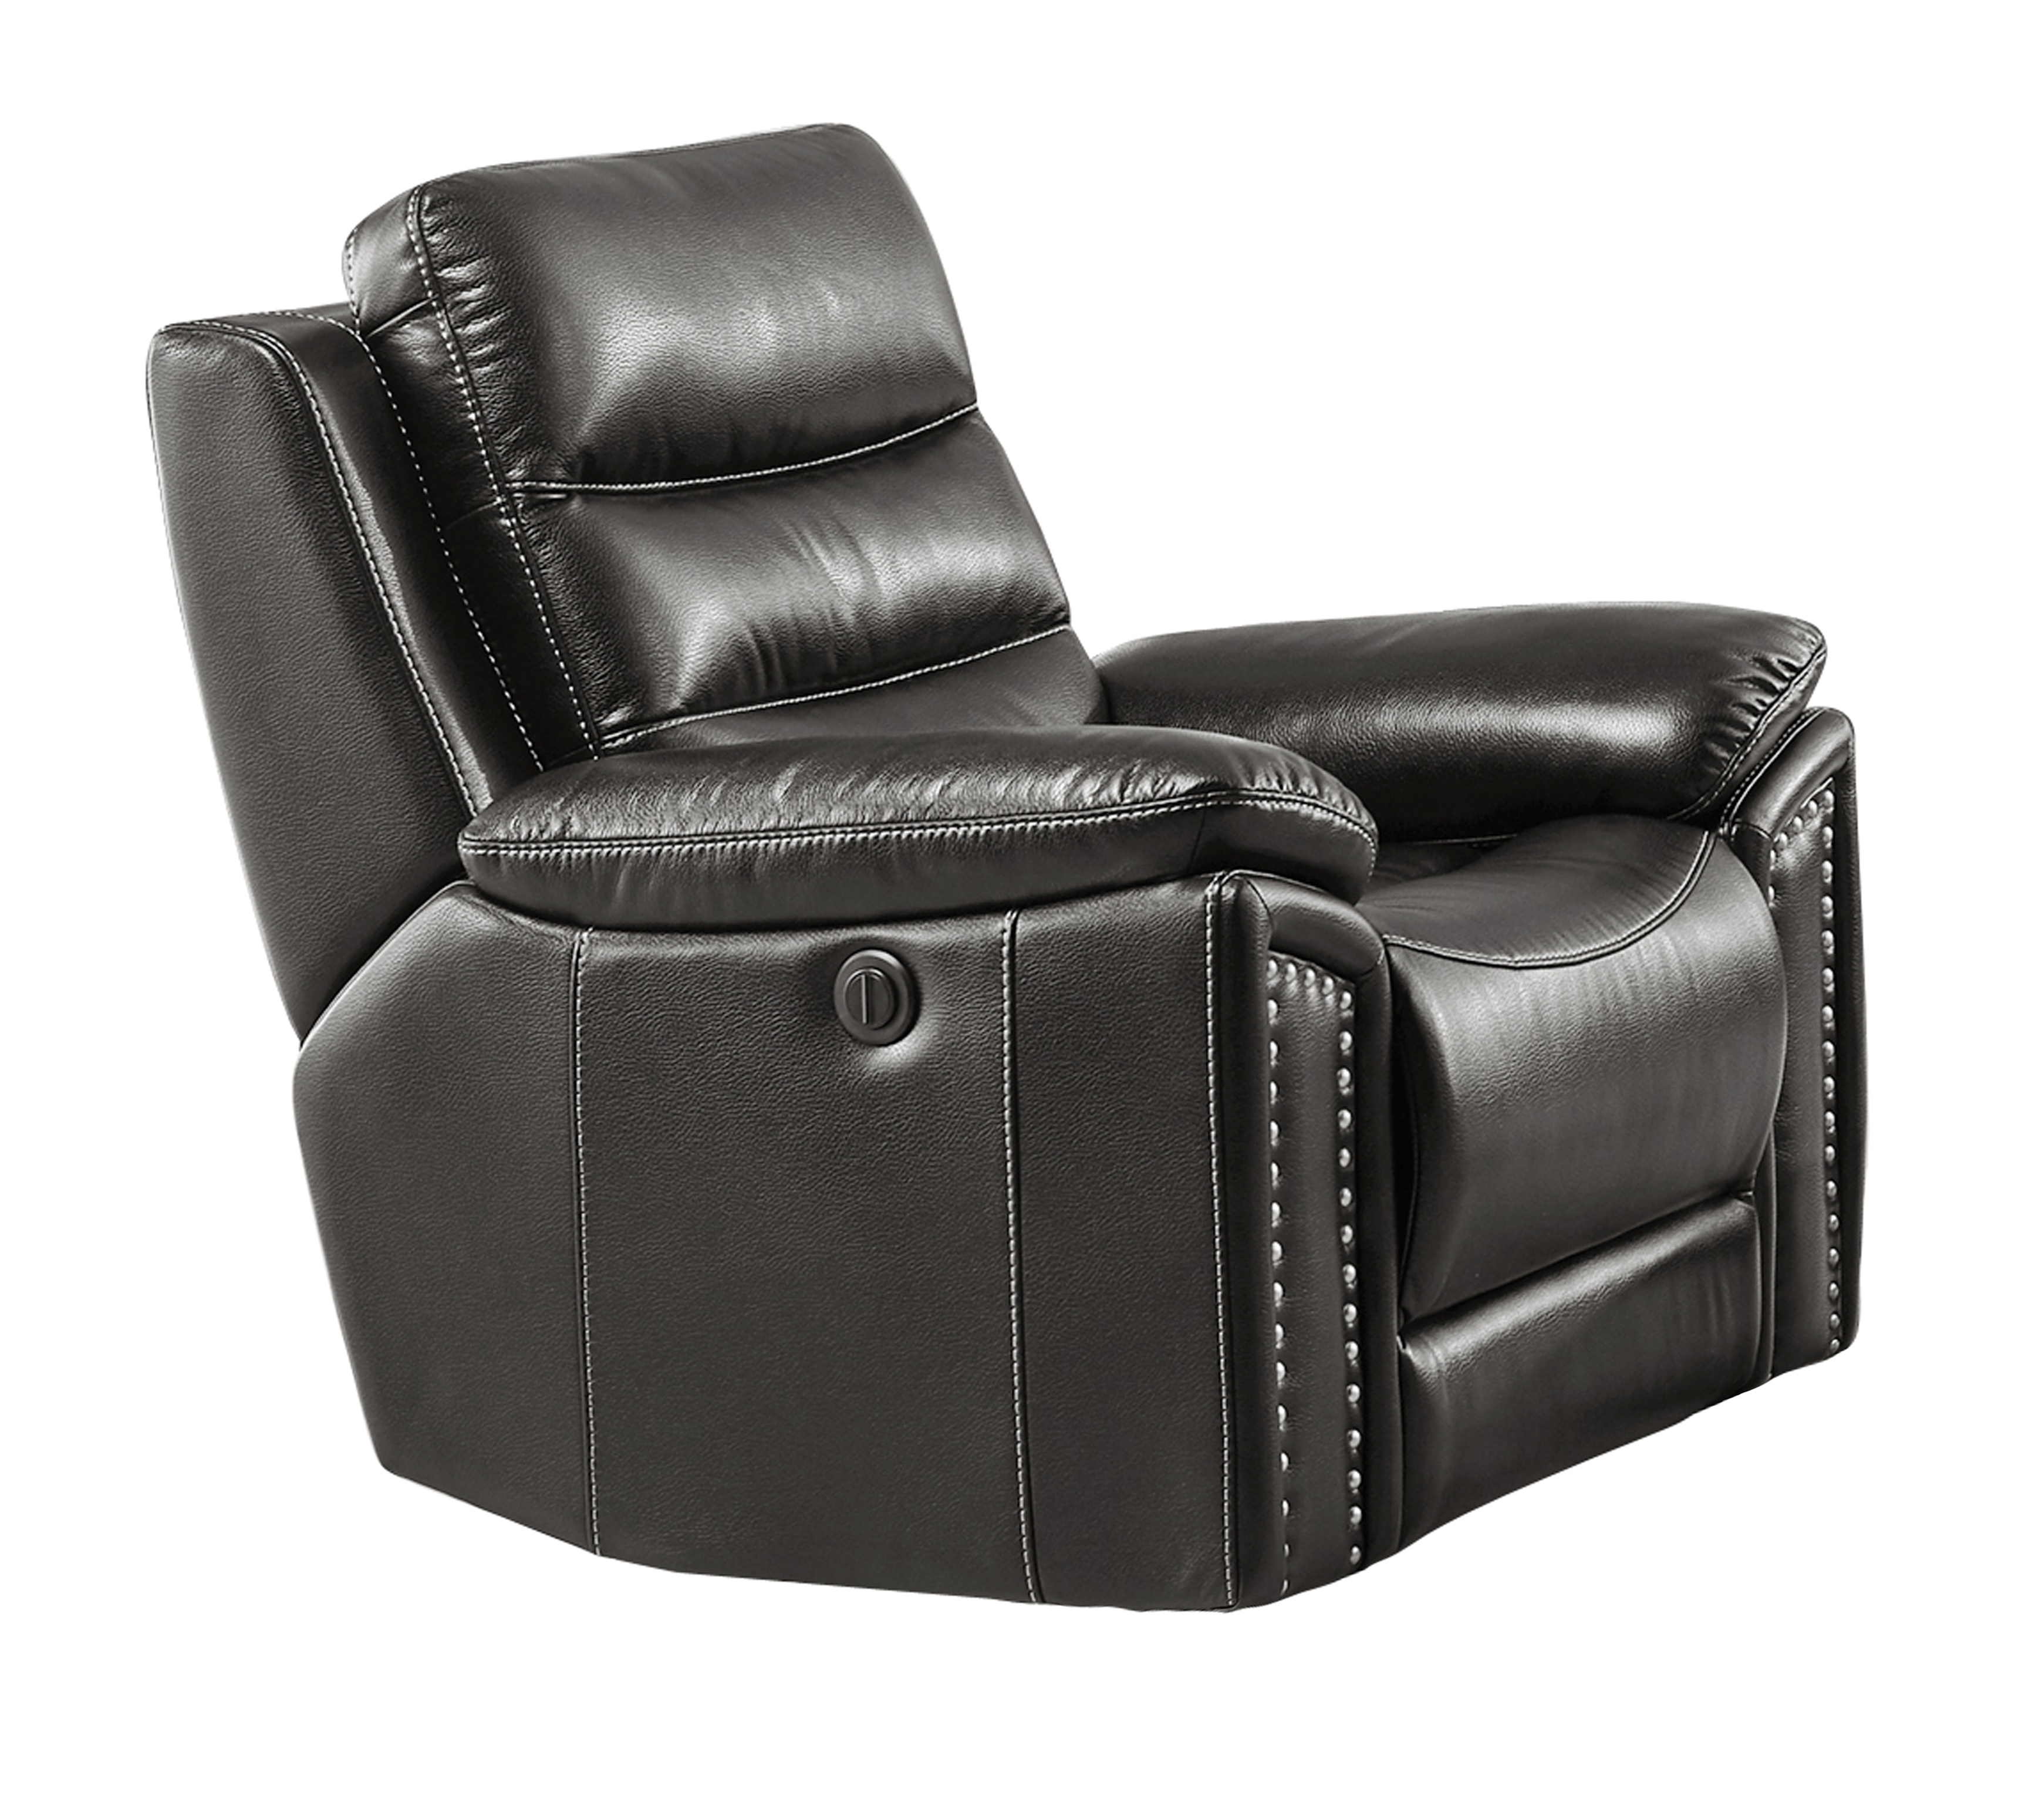 Jetson Power Reclining Chair Leather Air Code G12 Grey